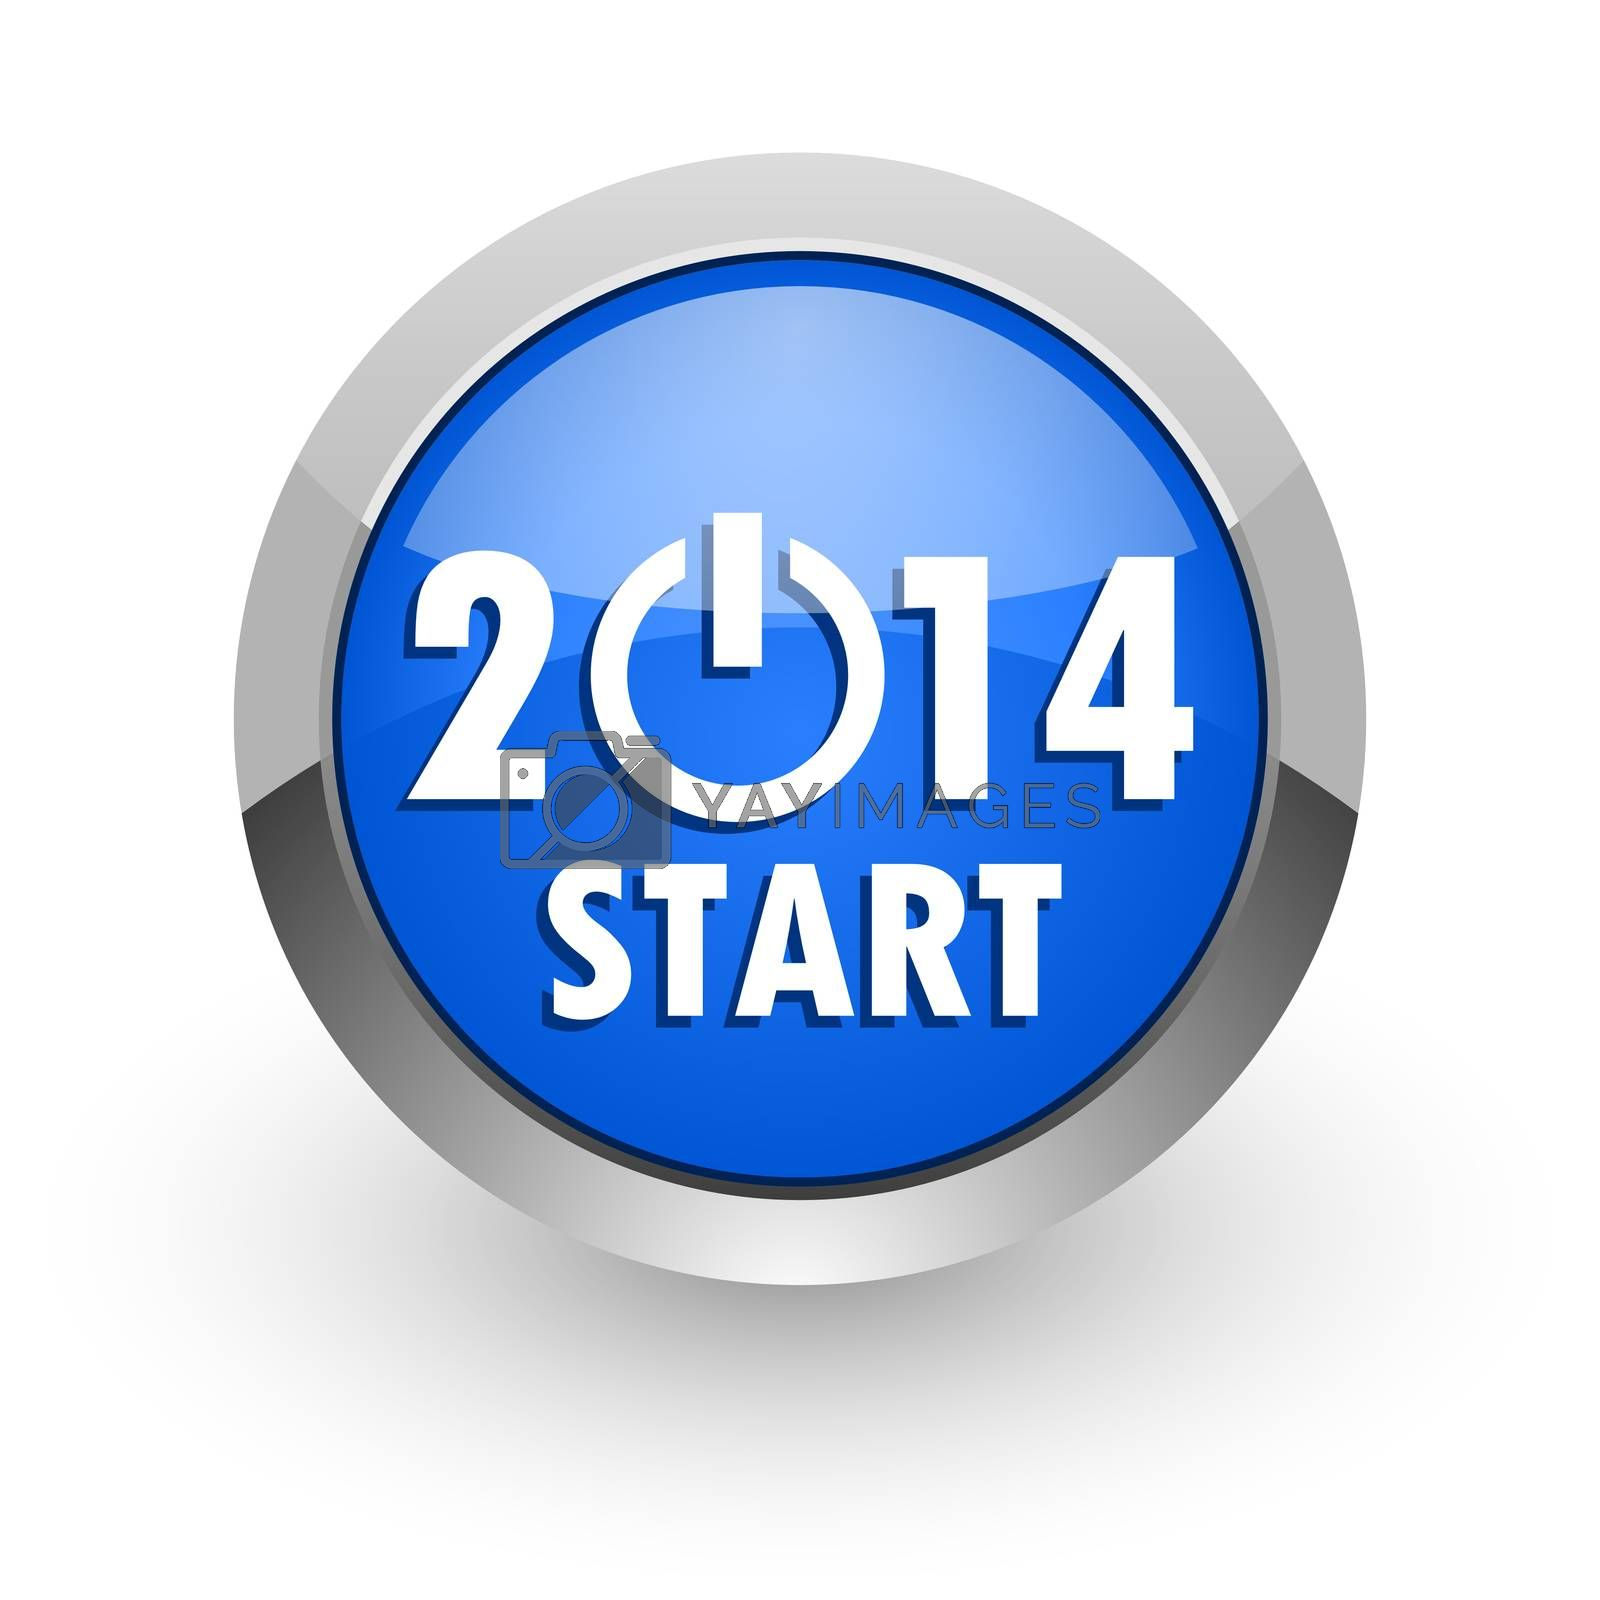 Royalty free image of year 2014 blue glossy web icon by alexwhite